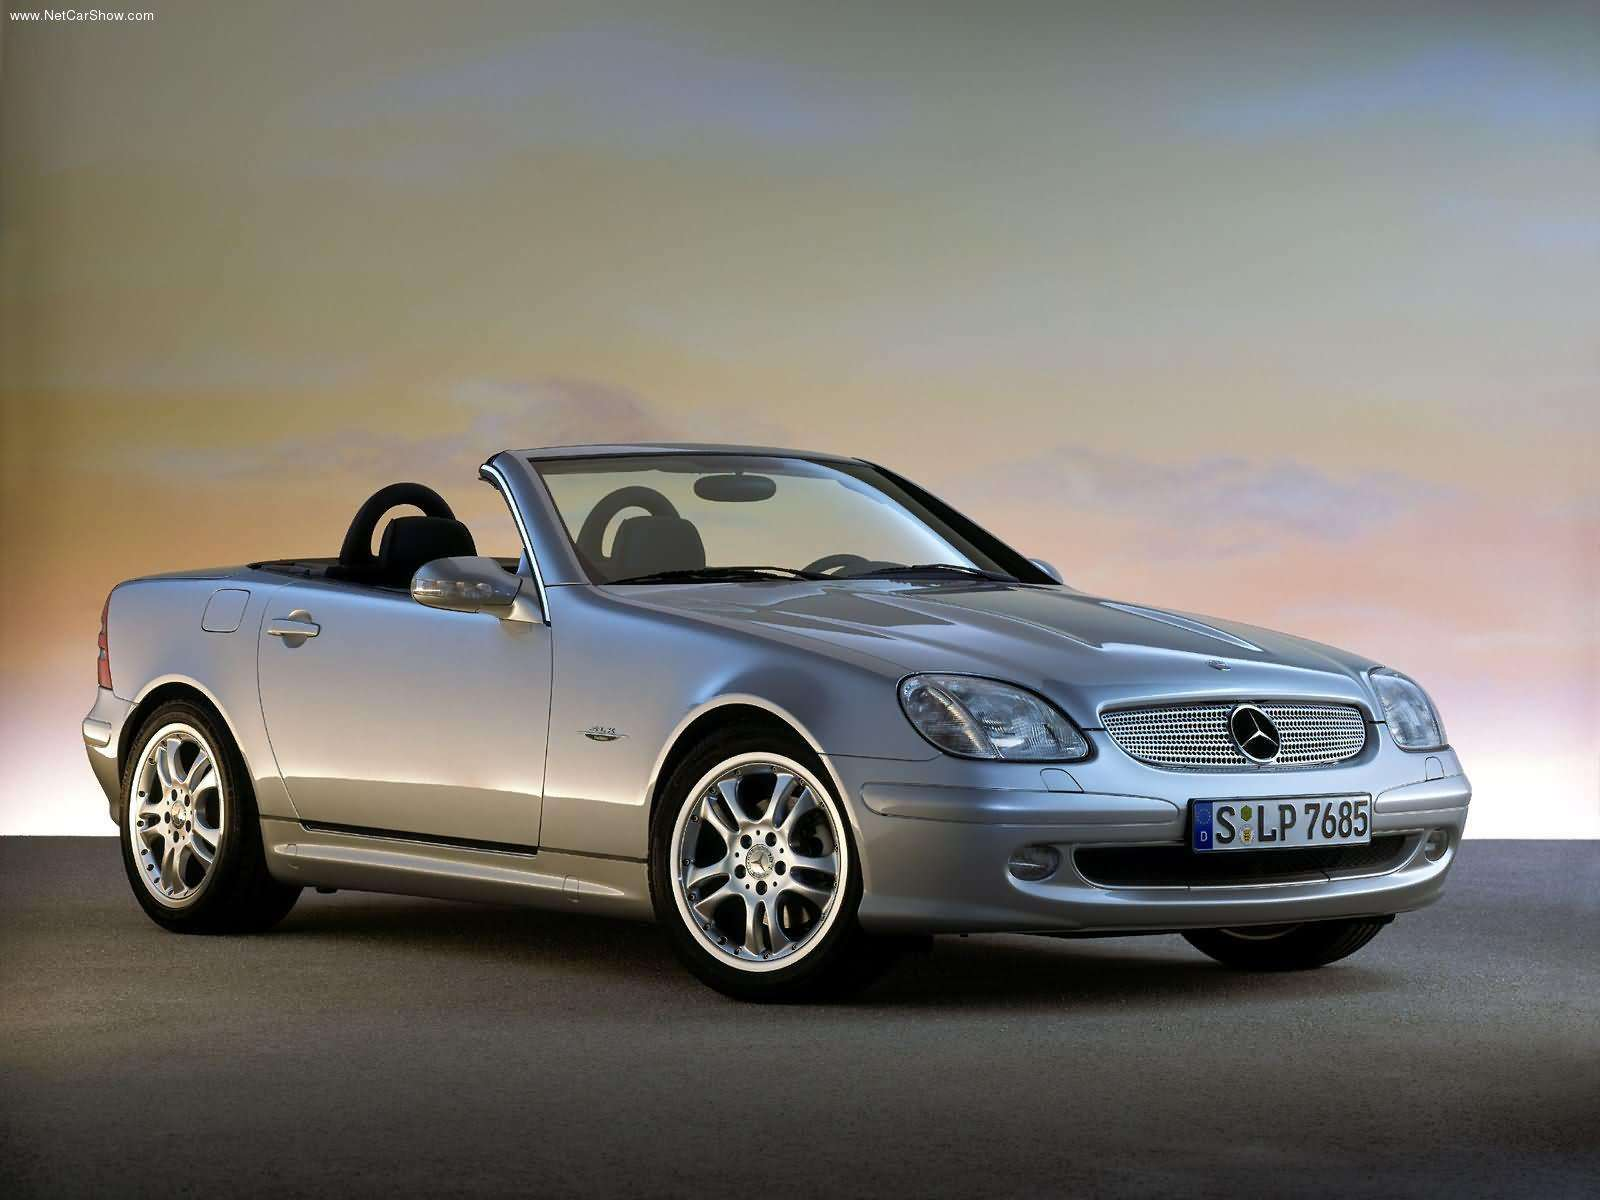 mercedes slk 200 k 163ch facelift avis auto titre. Black Bedroom Furniture Sets. Home Design Ideas